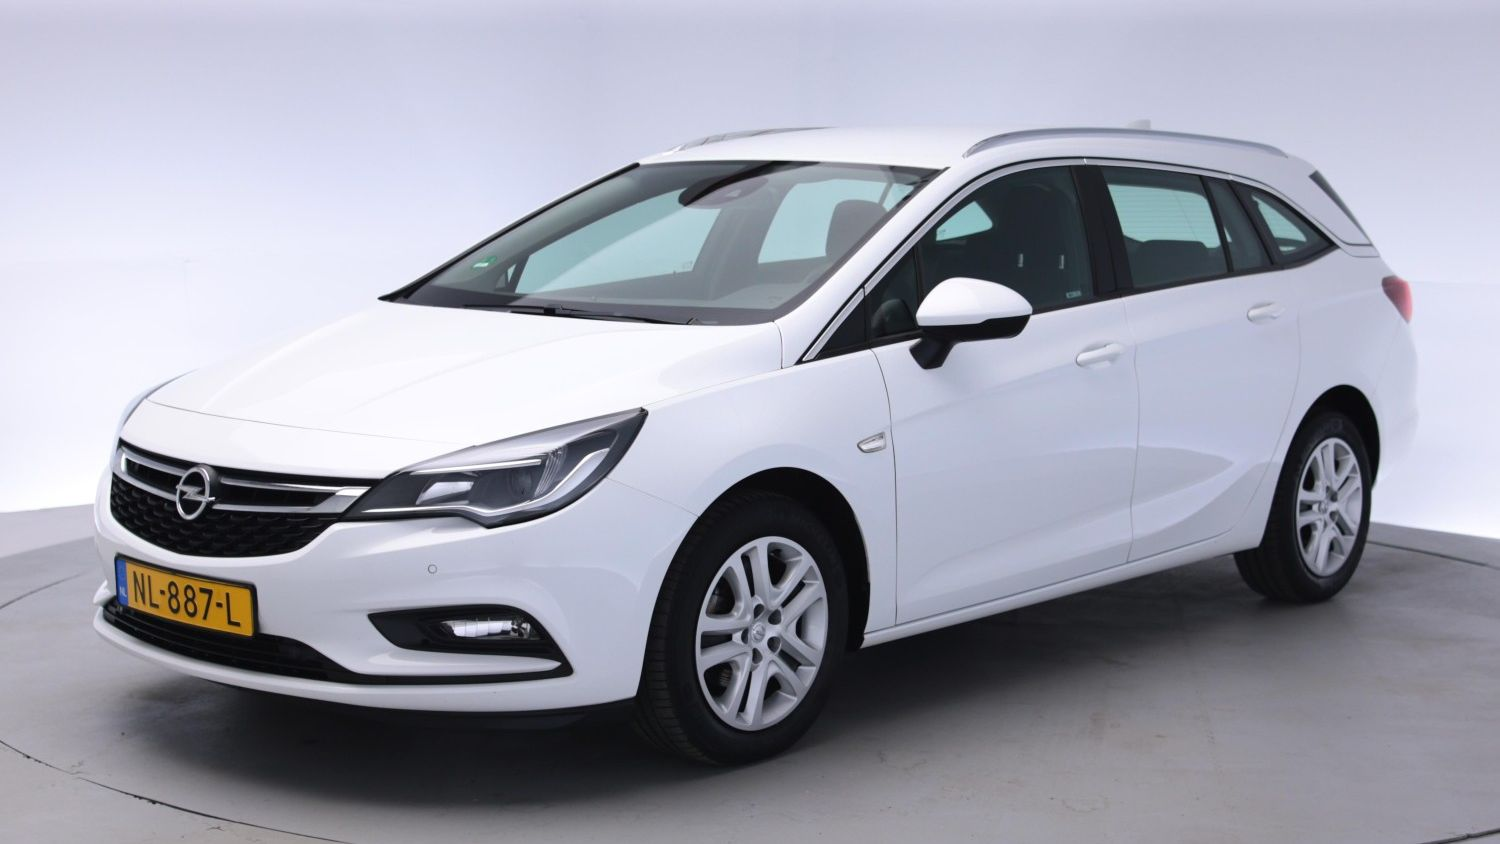 Opel Astra Station 2017 NL-887-L 1